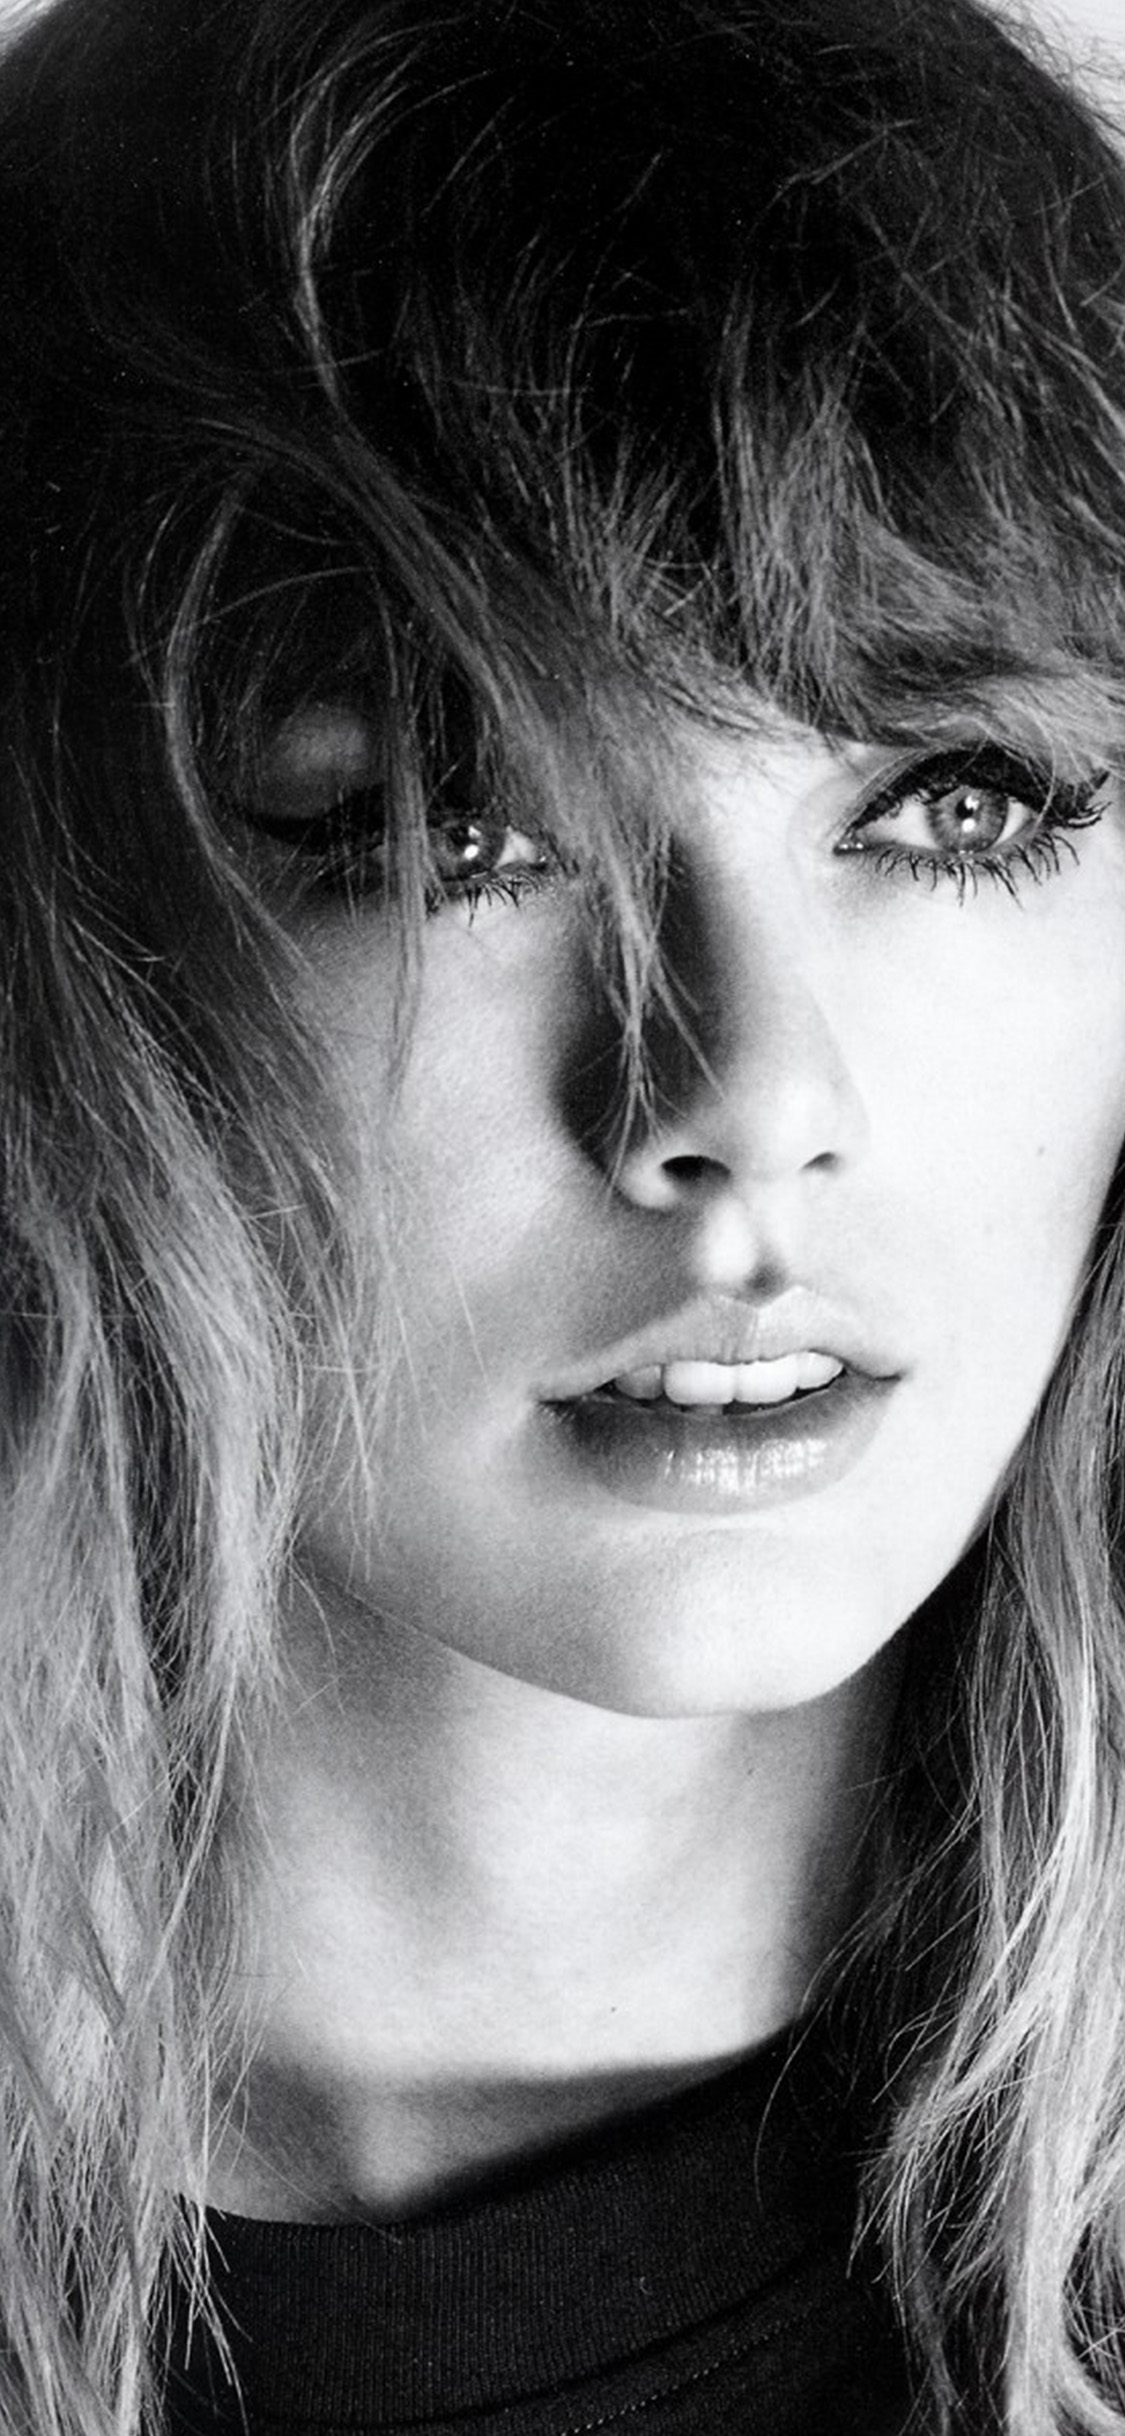 iPhonexpapers.com-Apple-iPhone-wallpaper-hq42-taylor-swift-girl-bw-dark-music-face